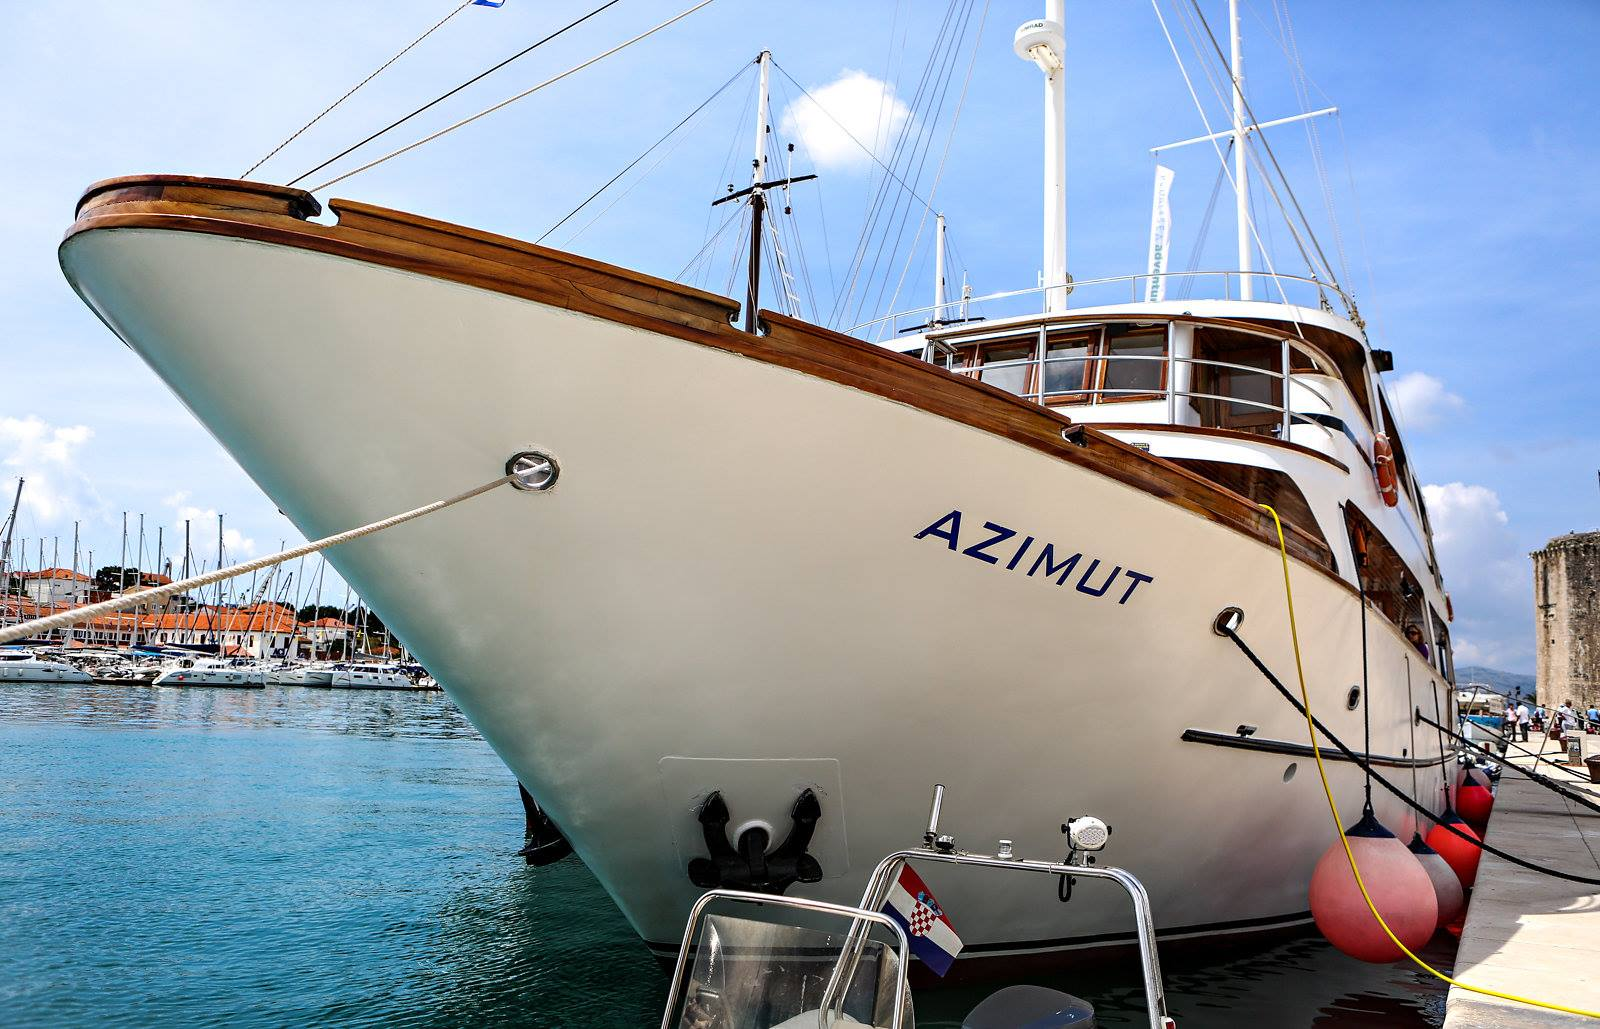 The Azimut